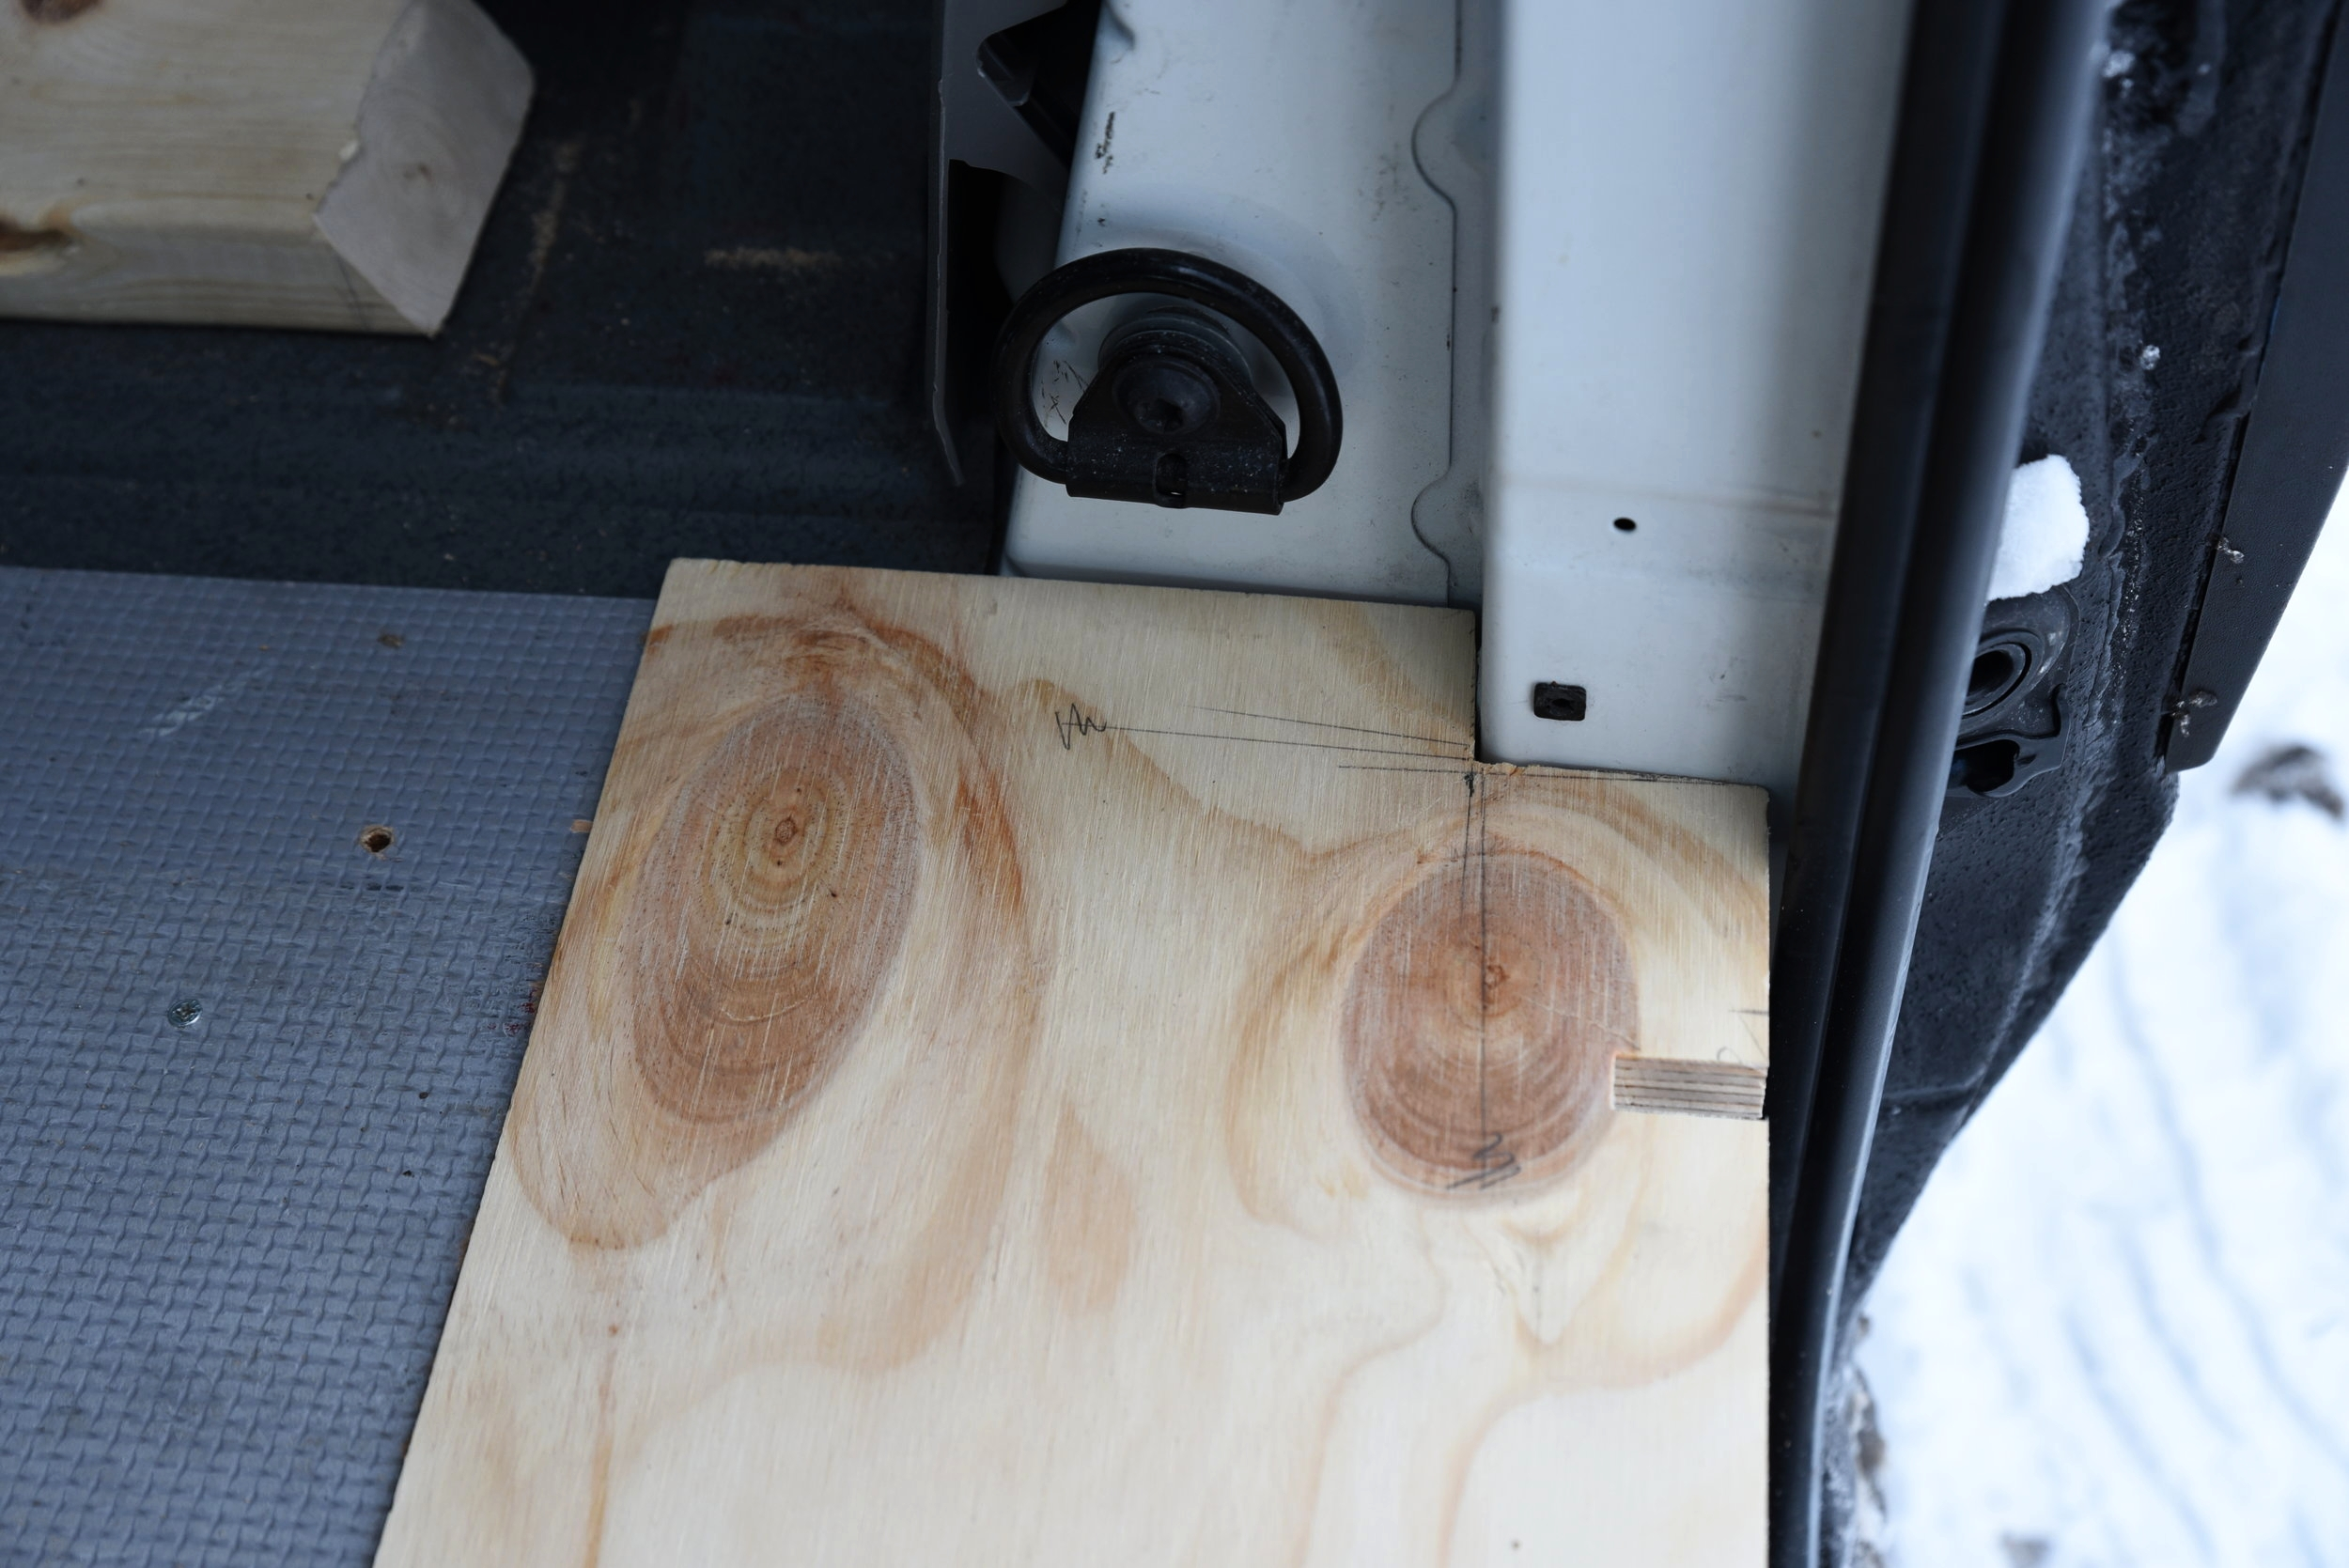 We made sure that the step had a very snug fit, because it's not attached to the van itself, only to the rest of the plywood flooring.